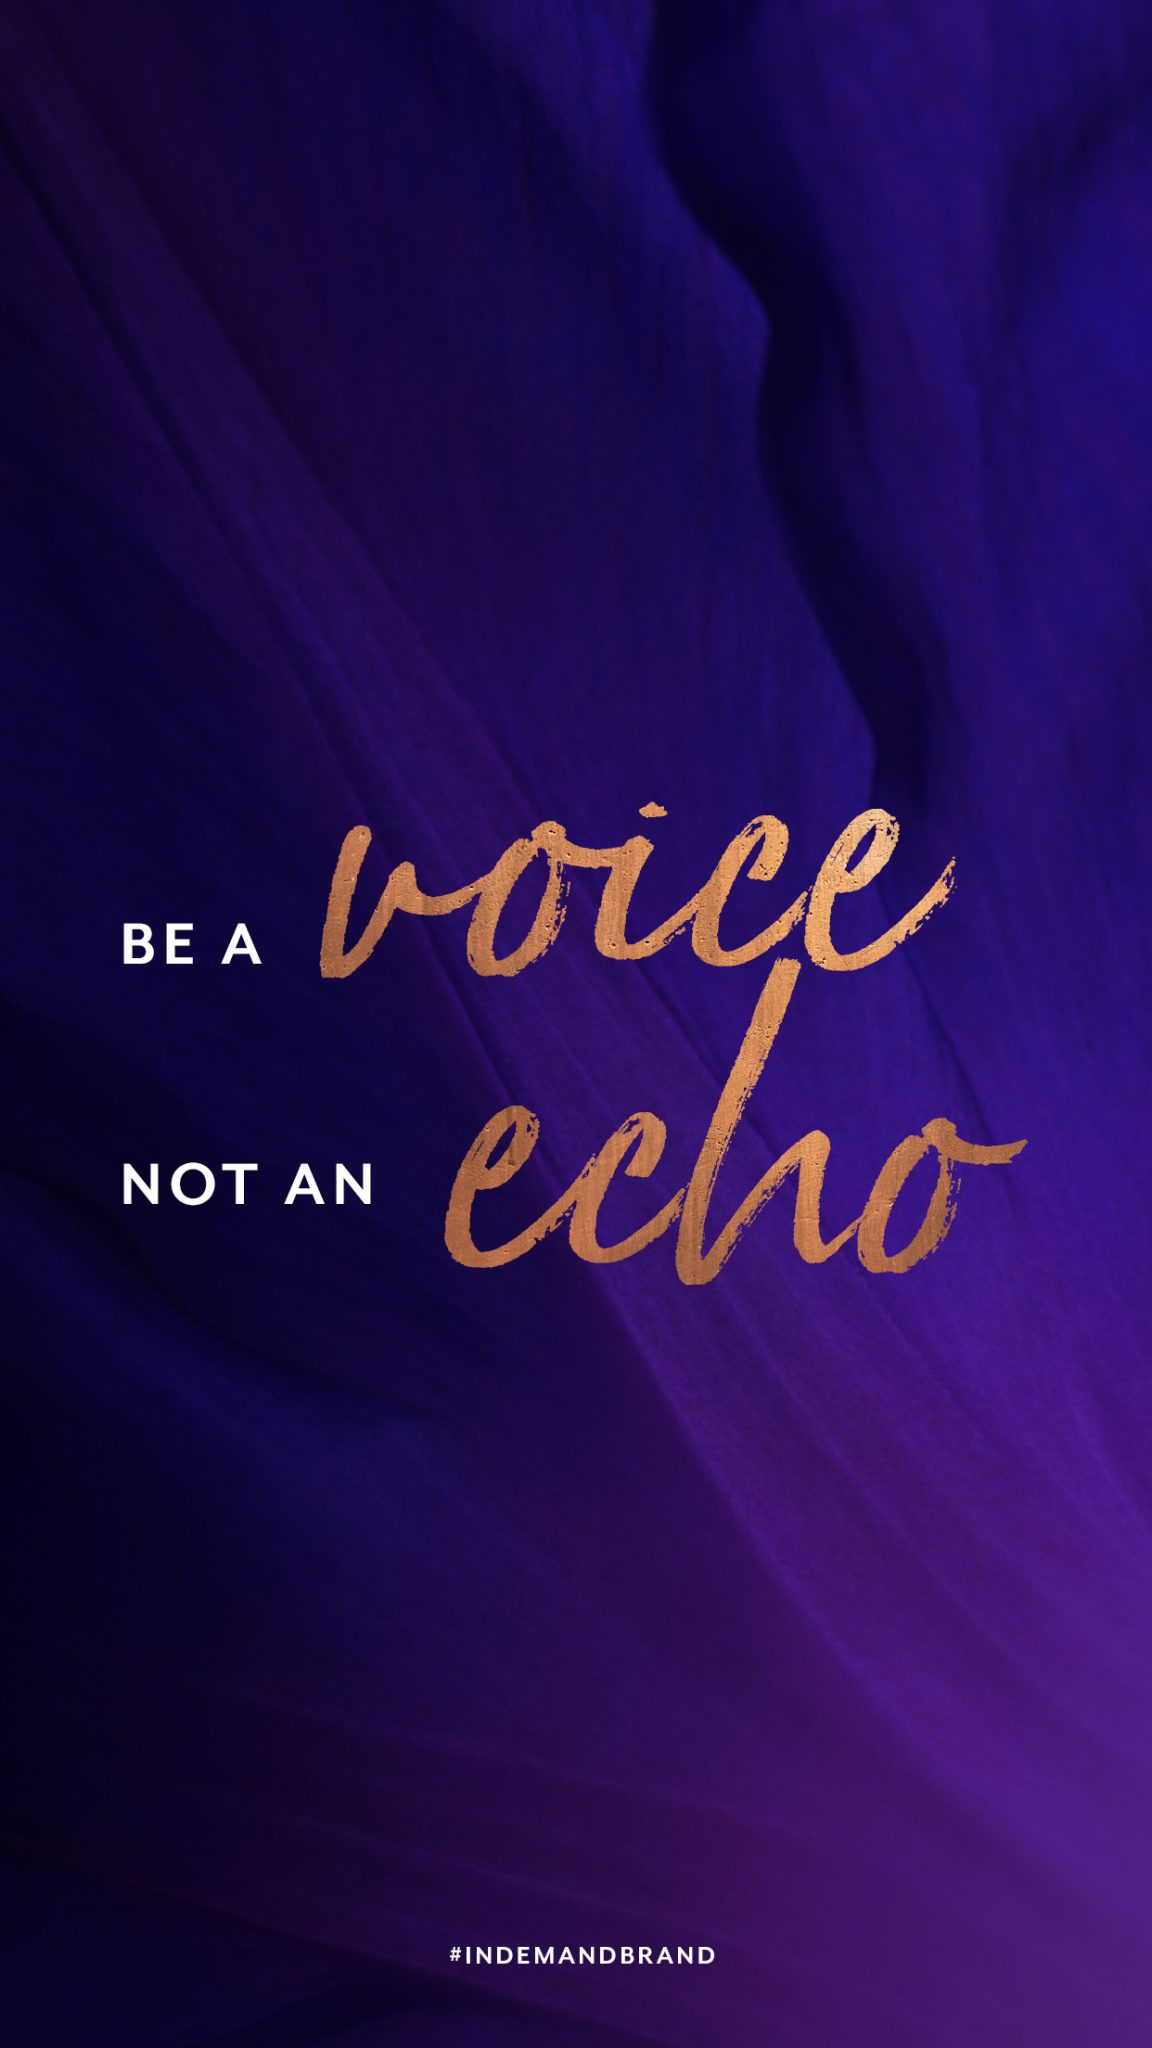 Be a voice, not an echo. #InDemandBrand